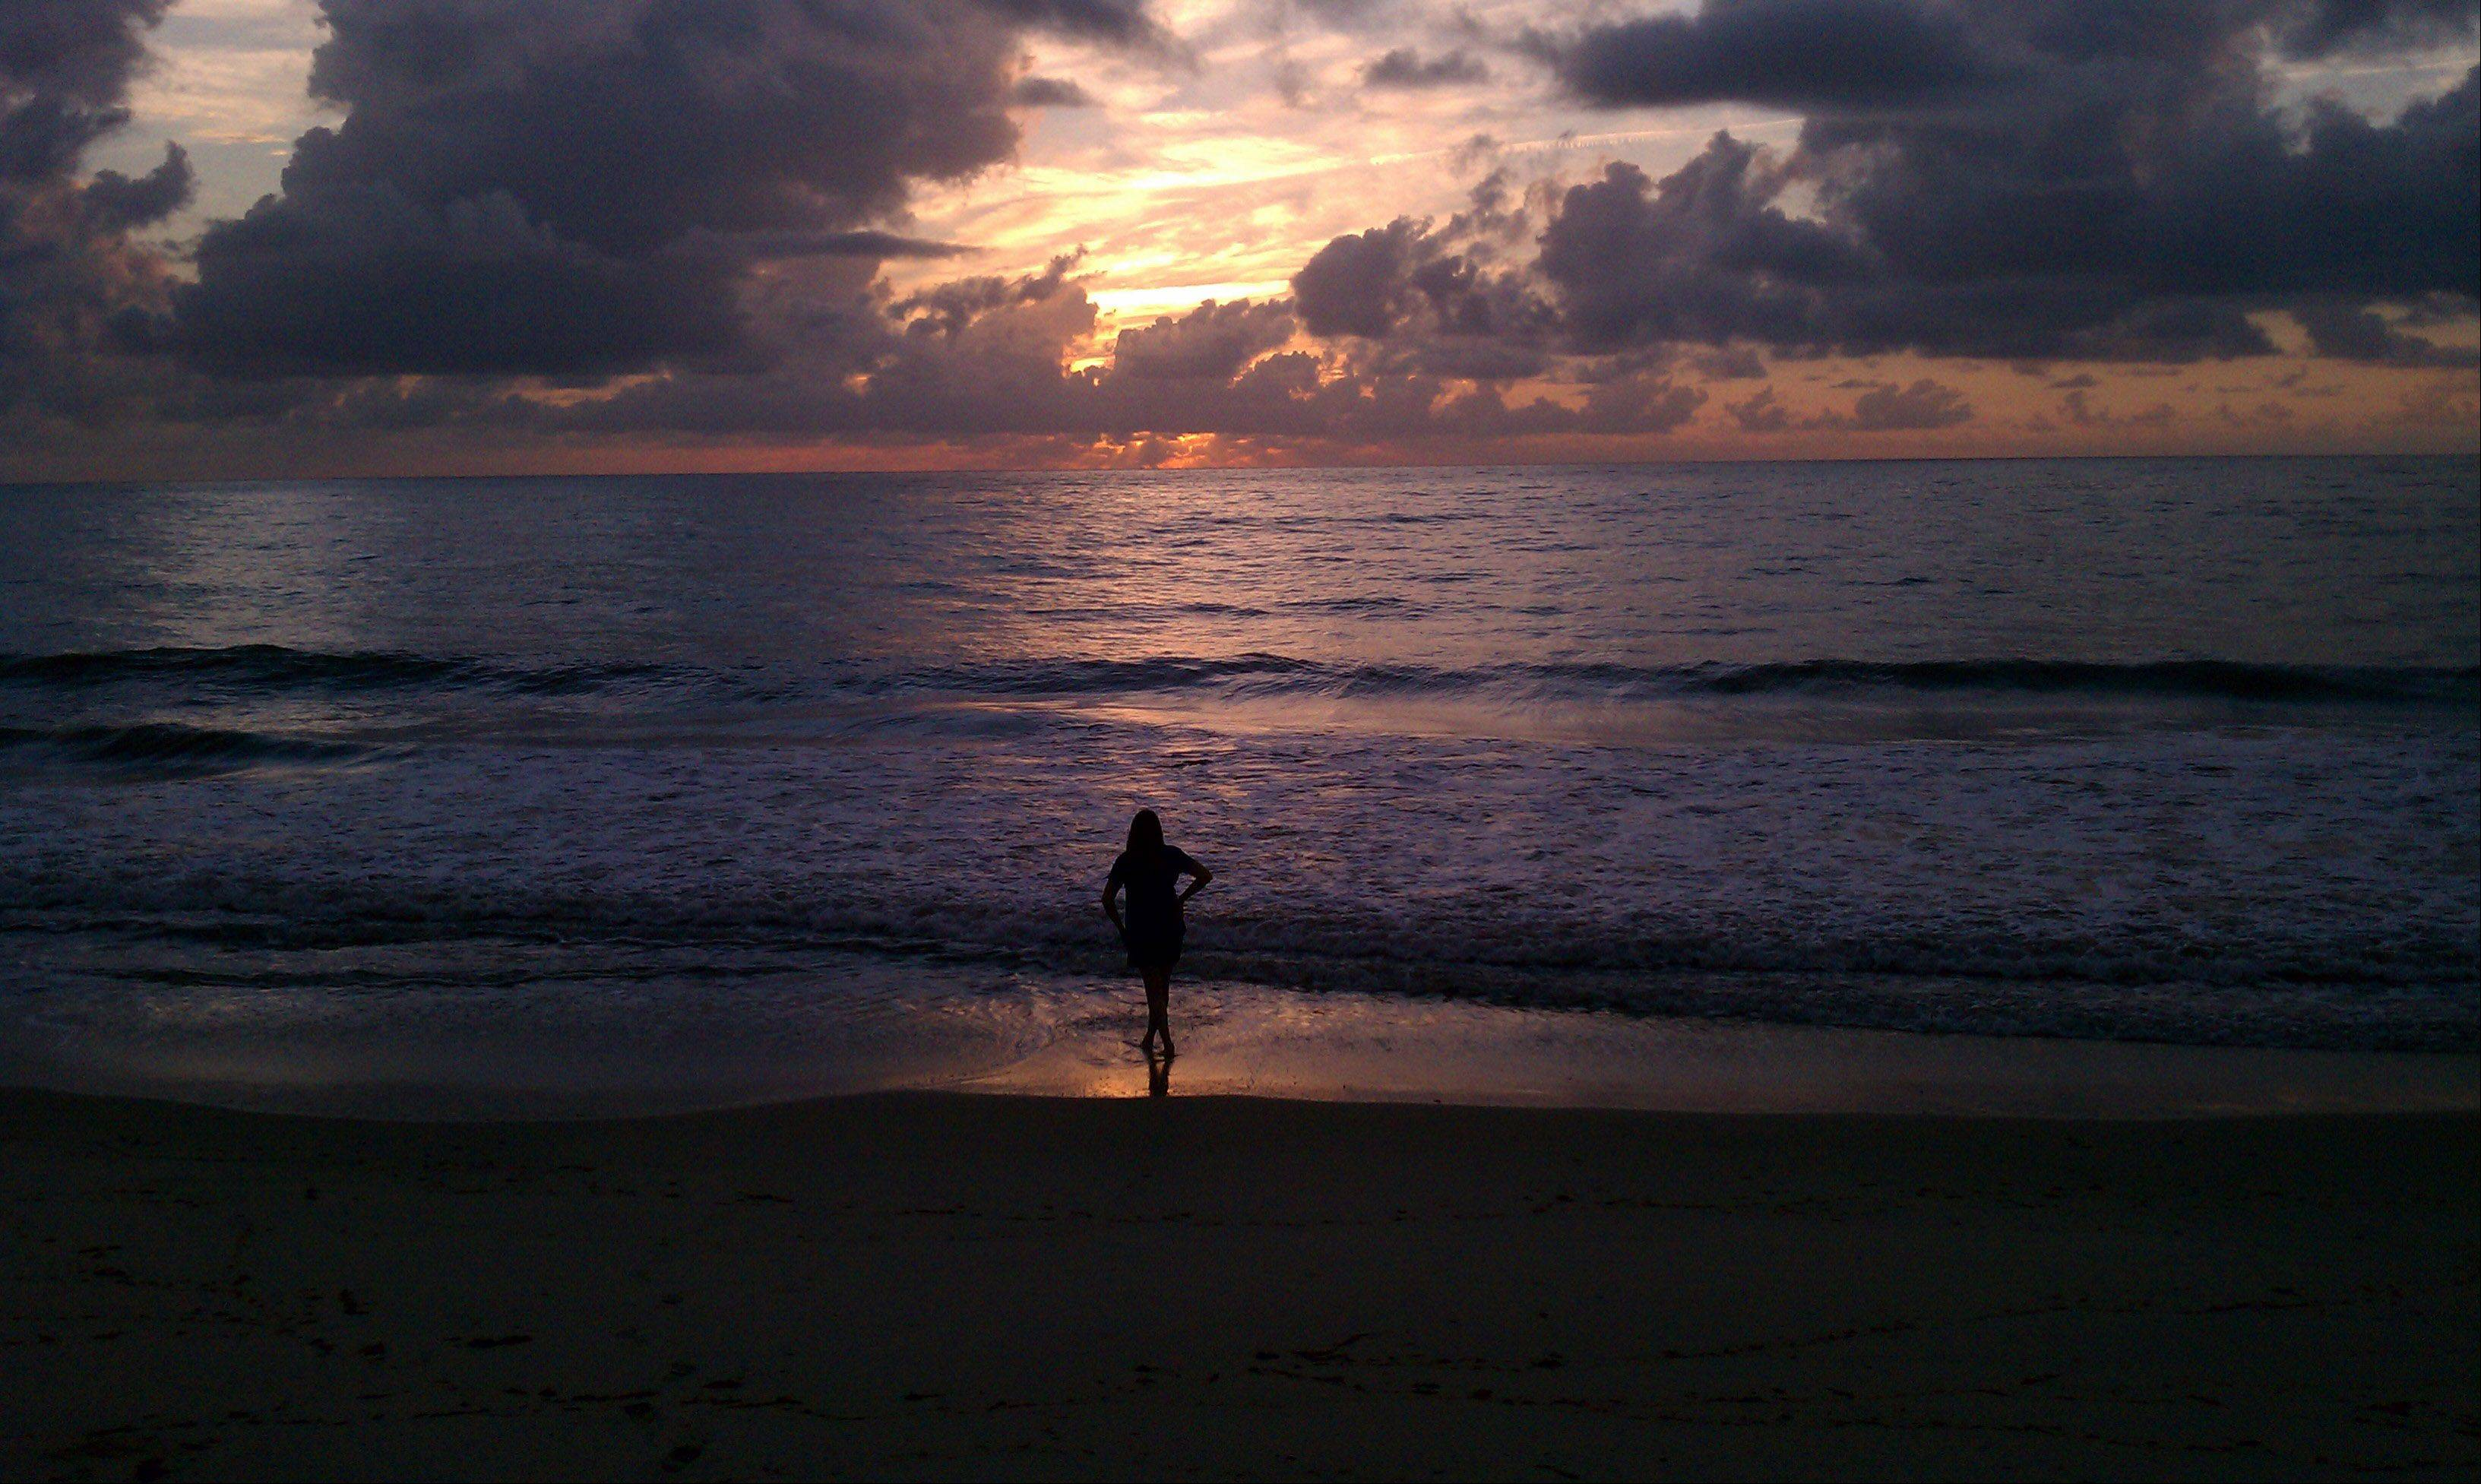 After driving straight through from the Fox Valley to Vero Beach, Florida, my wife and I arrived at South Beach at about 6 a.m. The sun had just come up and it was gorgeous. My wife made it to the water's edge first totally immersed in the moment and I took the picture.